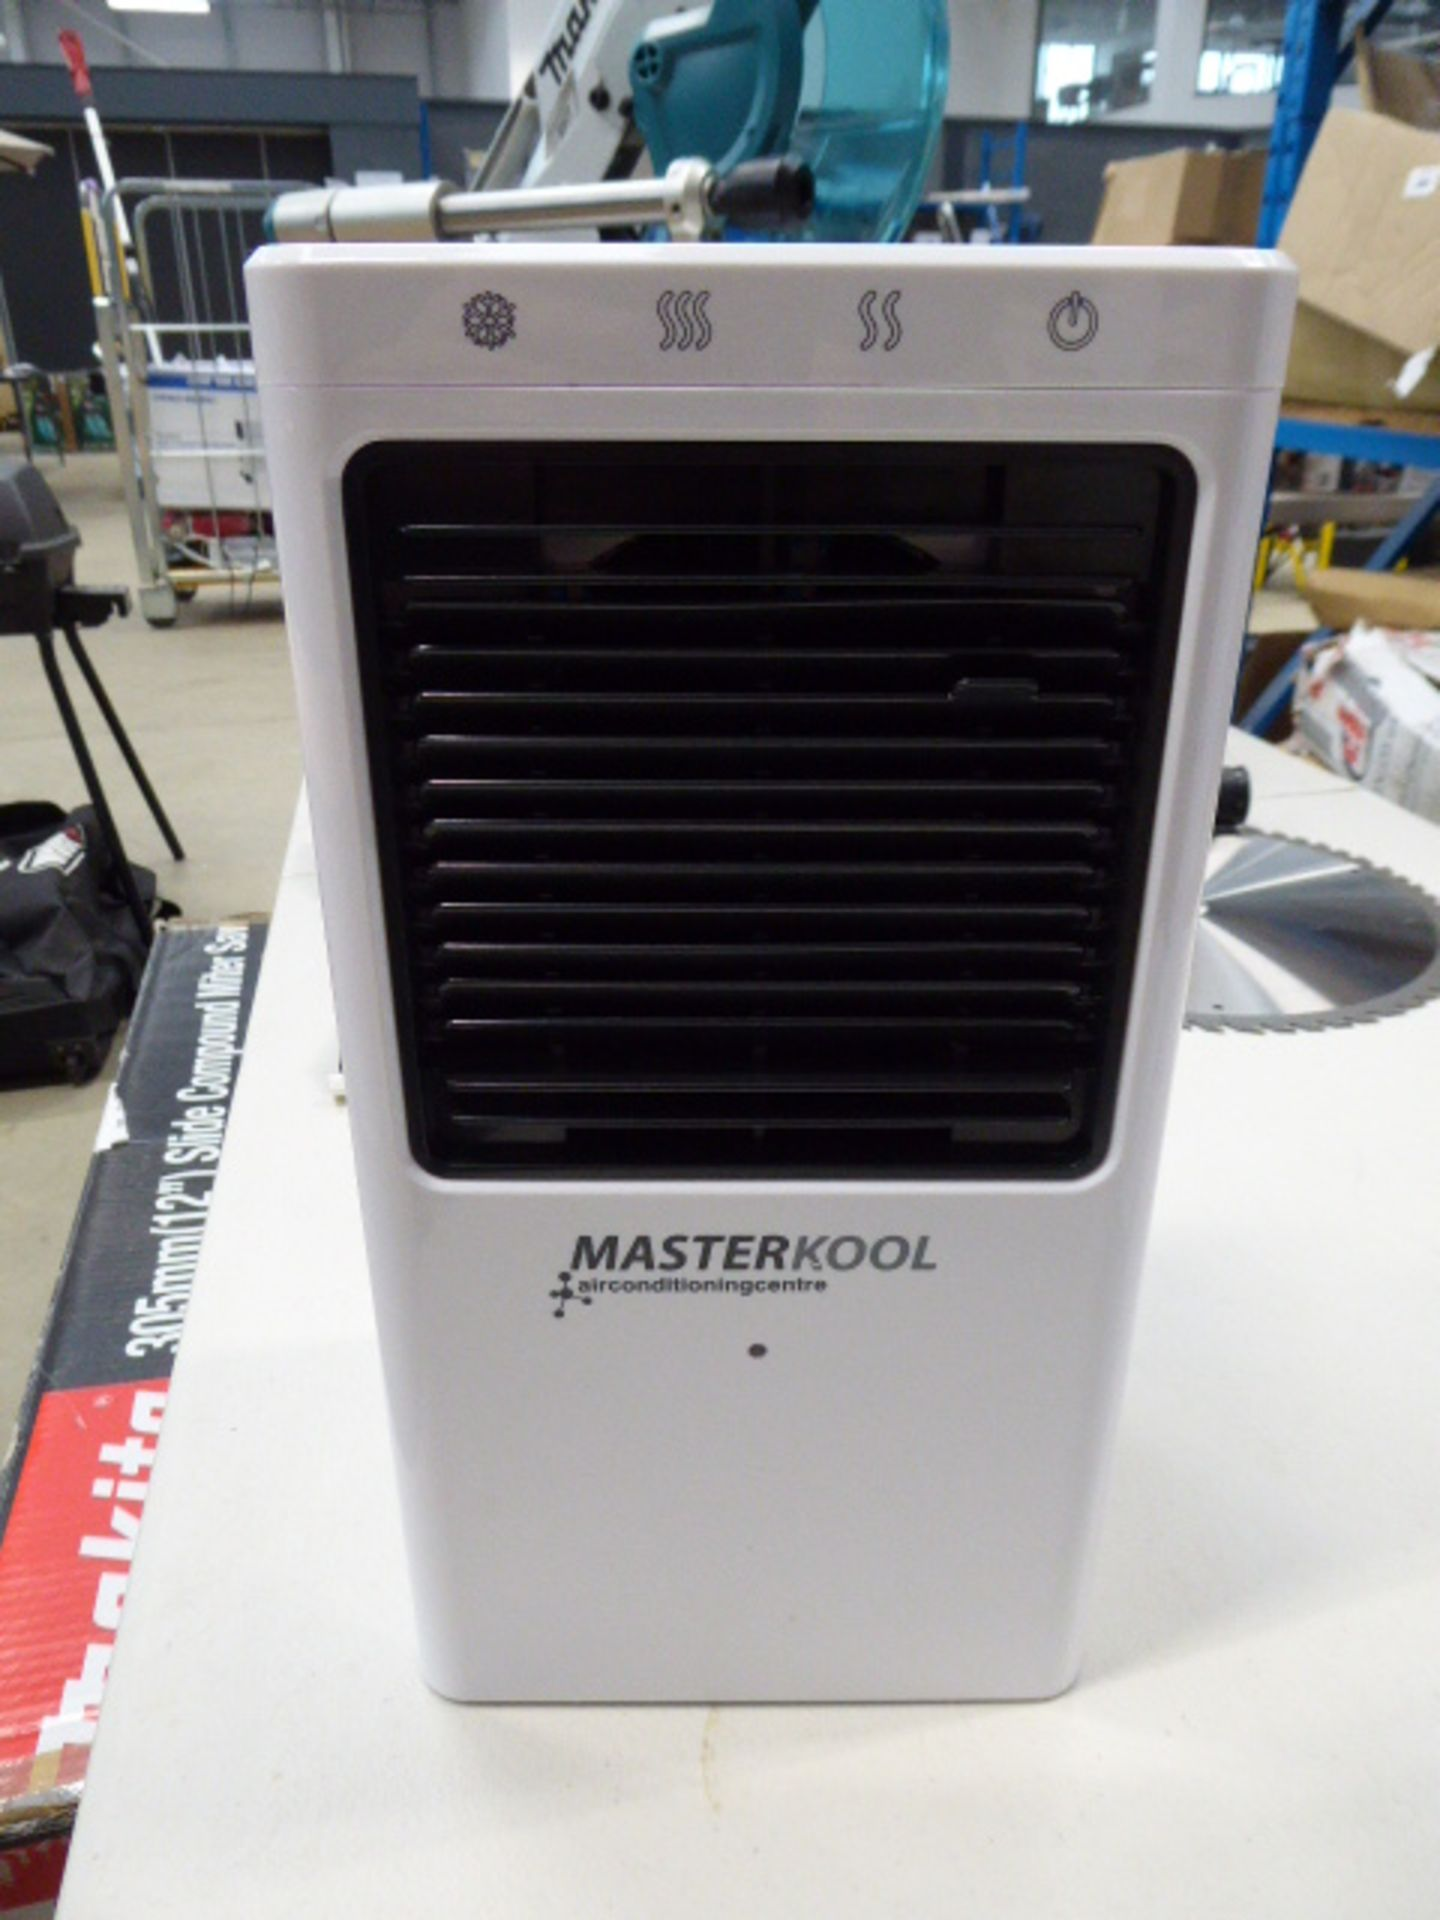 Mastercool table top air cooler - Image 2 of 2